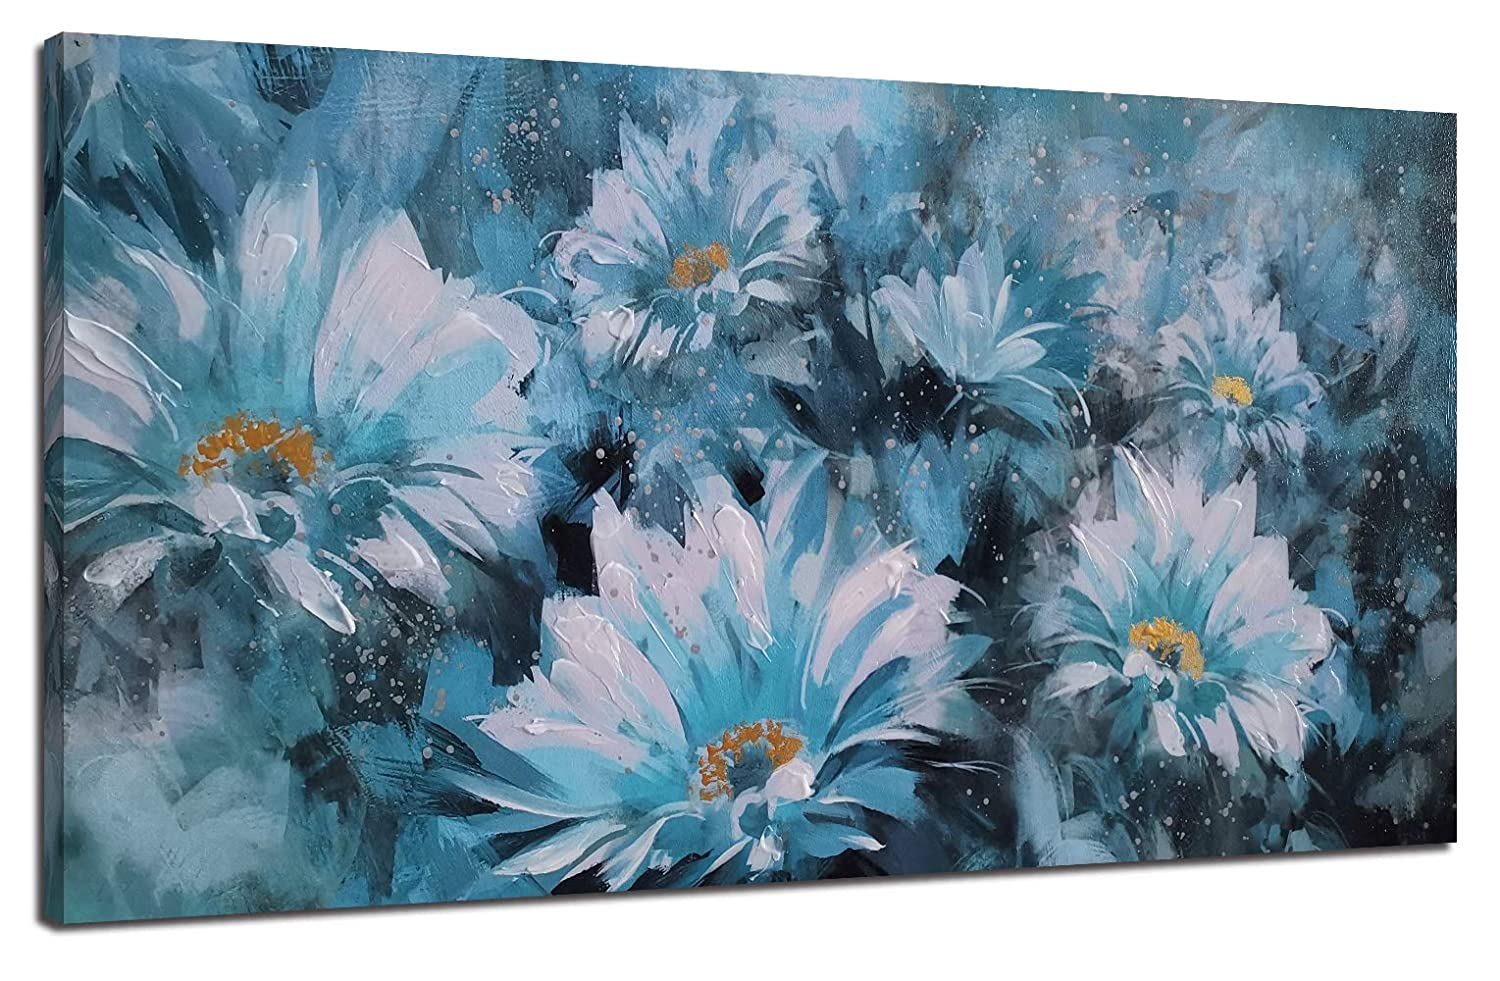 Canvas Wall Art Prints Blue Flowers Modern Floral Abstract Daisy Painting With Hand Painted Embellishment One Panel Large Wooden Framed Picture For